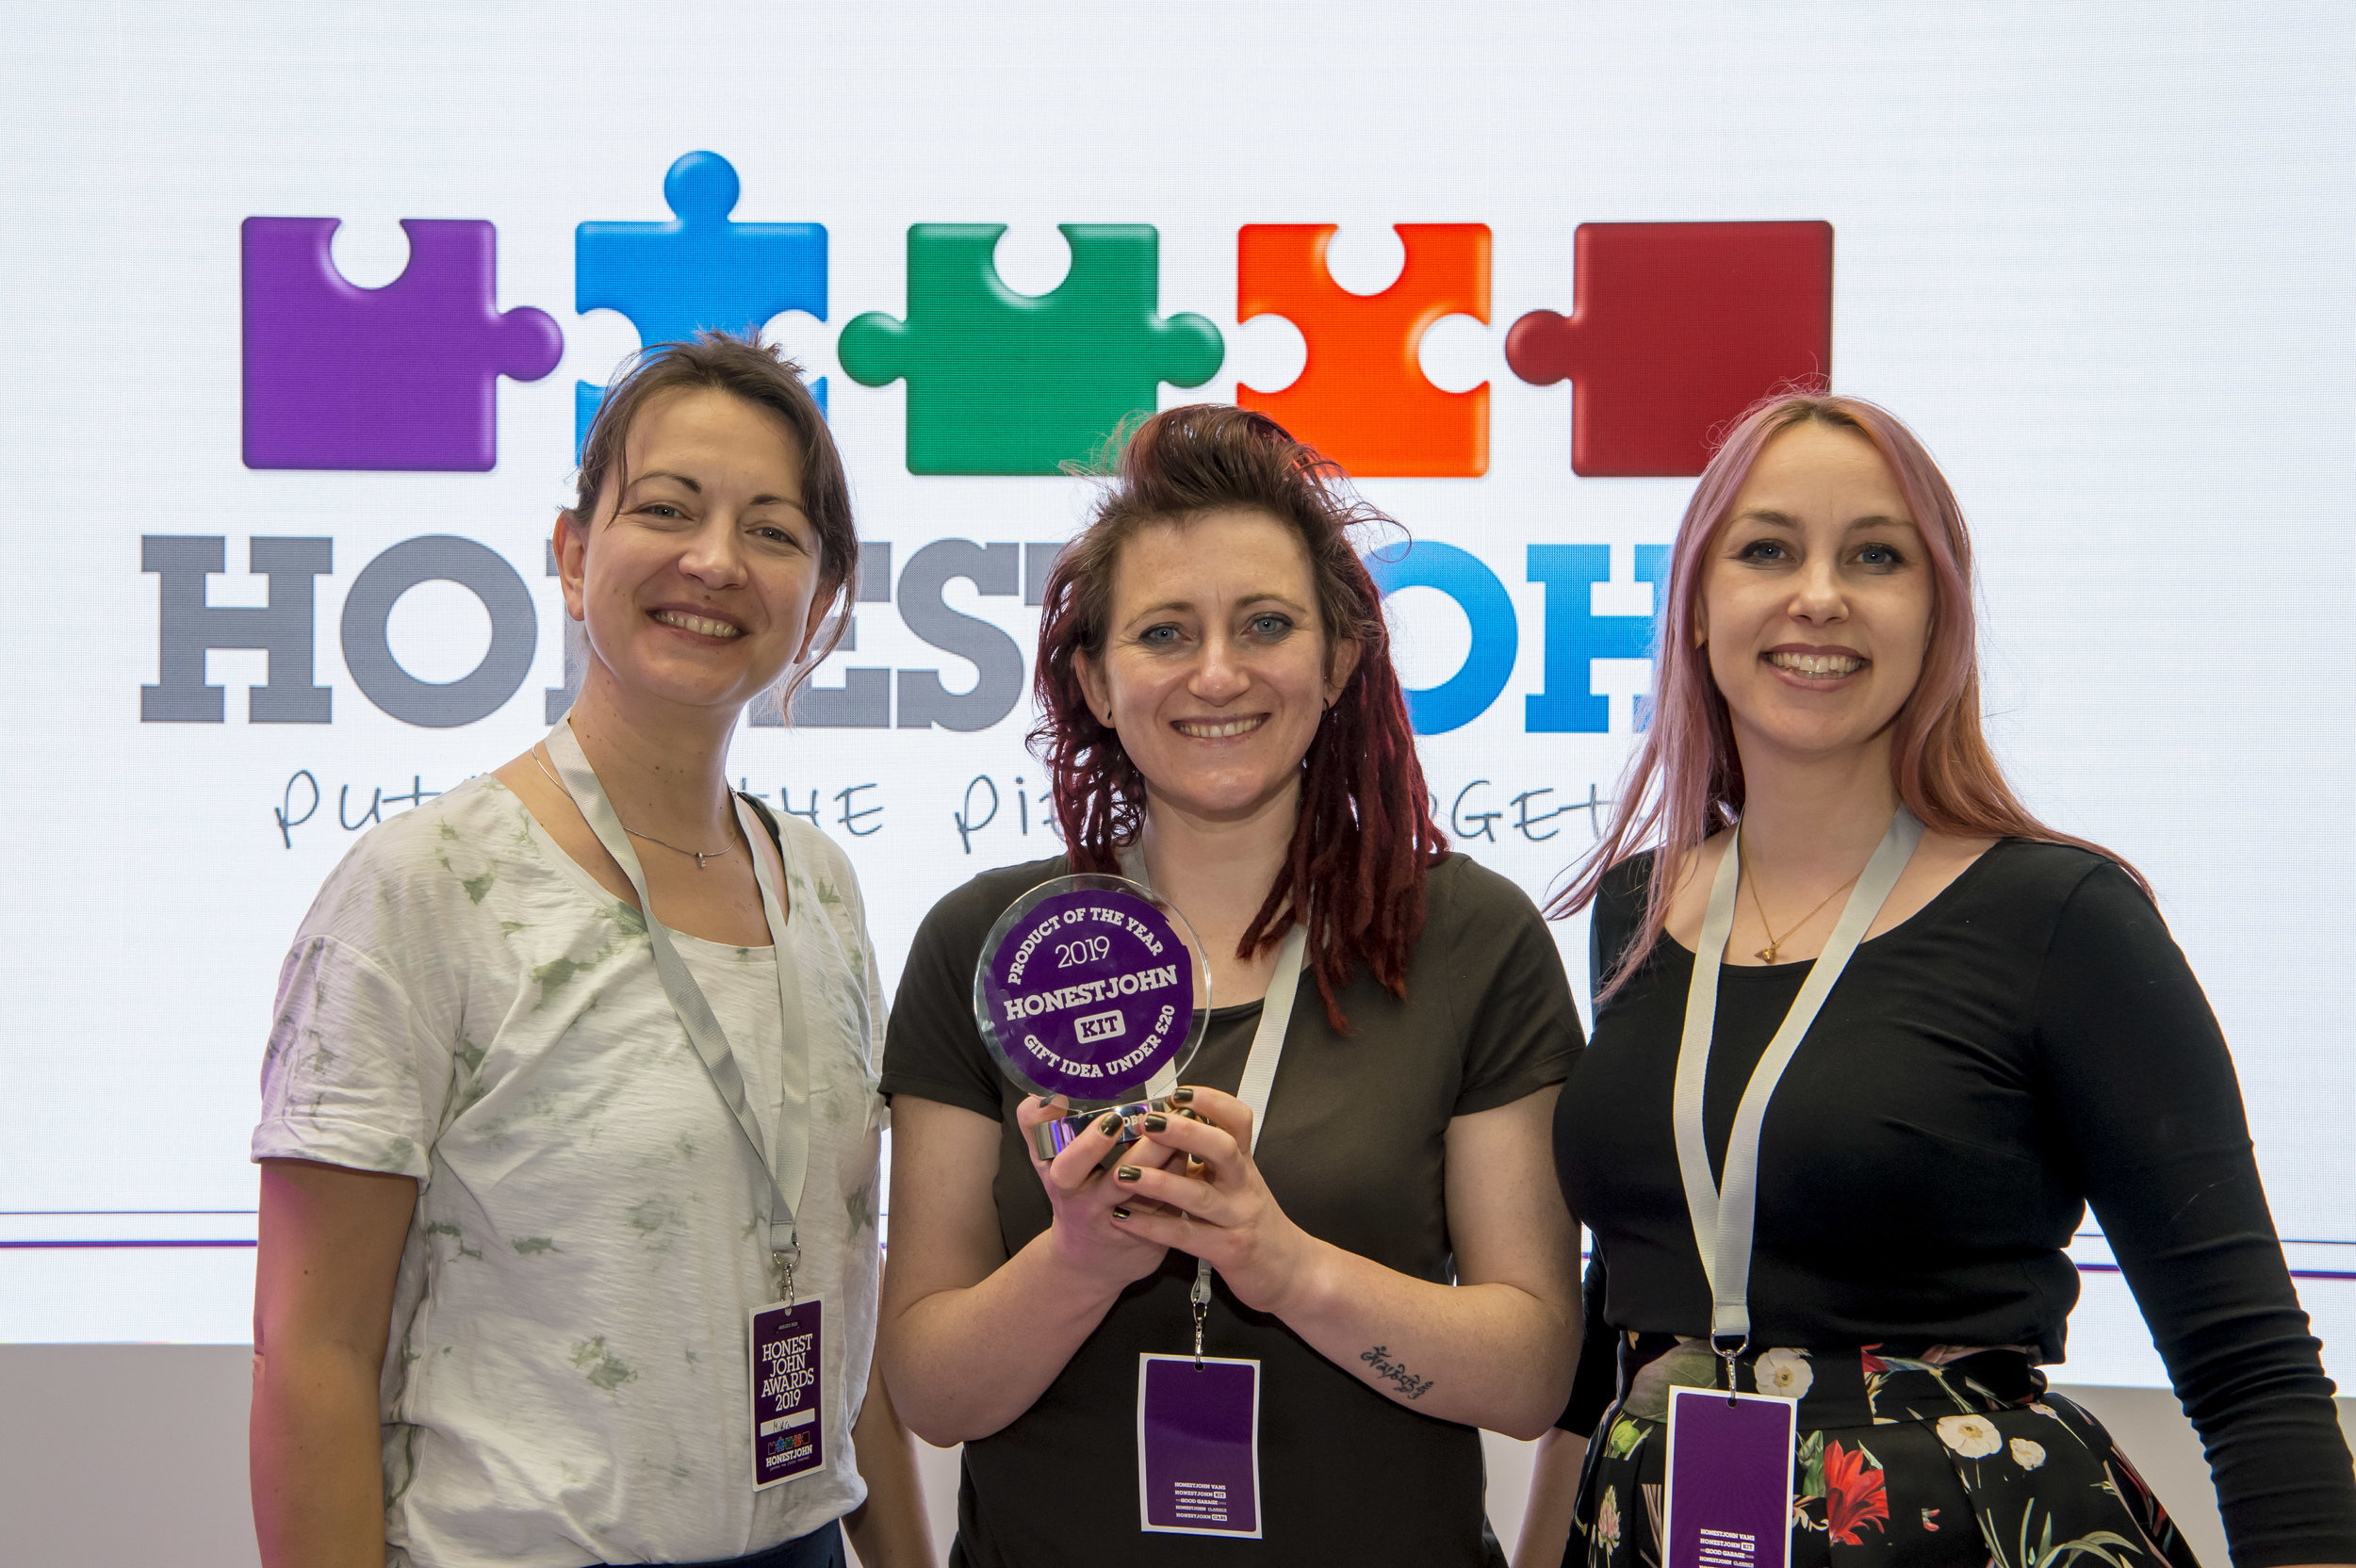 Pictured: Mika (left) Seed Ball Production Team Manager, Emma (centre) Seed Ball Co Founder & Ana, (right) Seed Ball Co Founder at an award ceremony in April 2019 where they won The Honest John's best gift idea under £20.